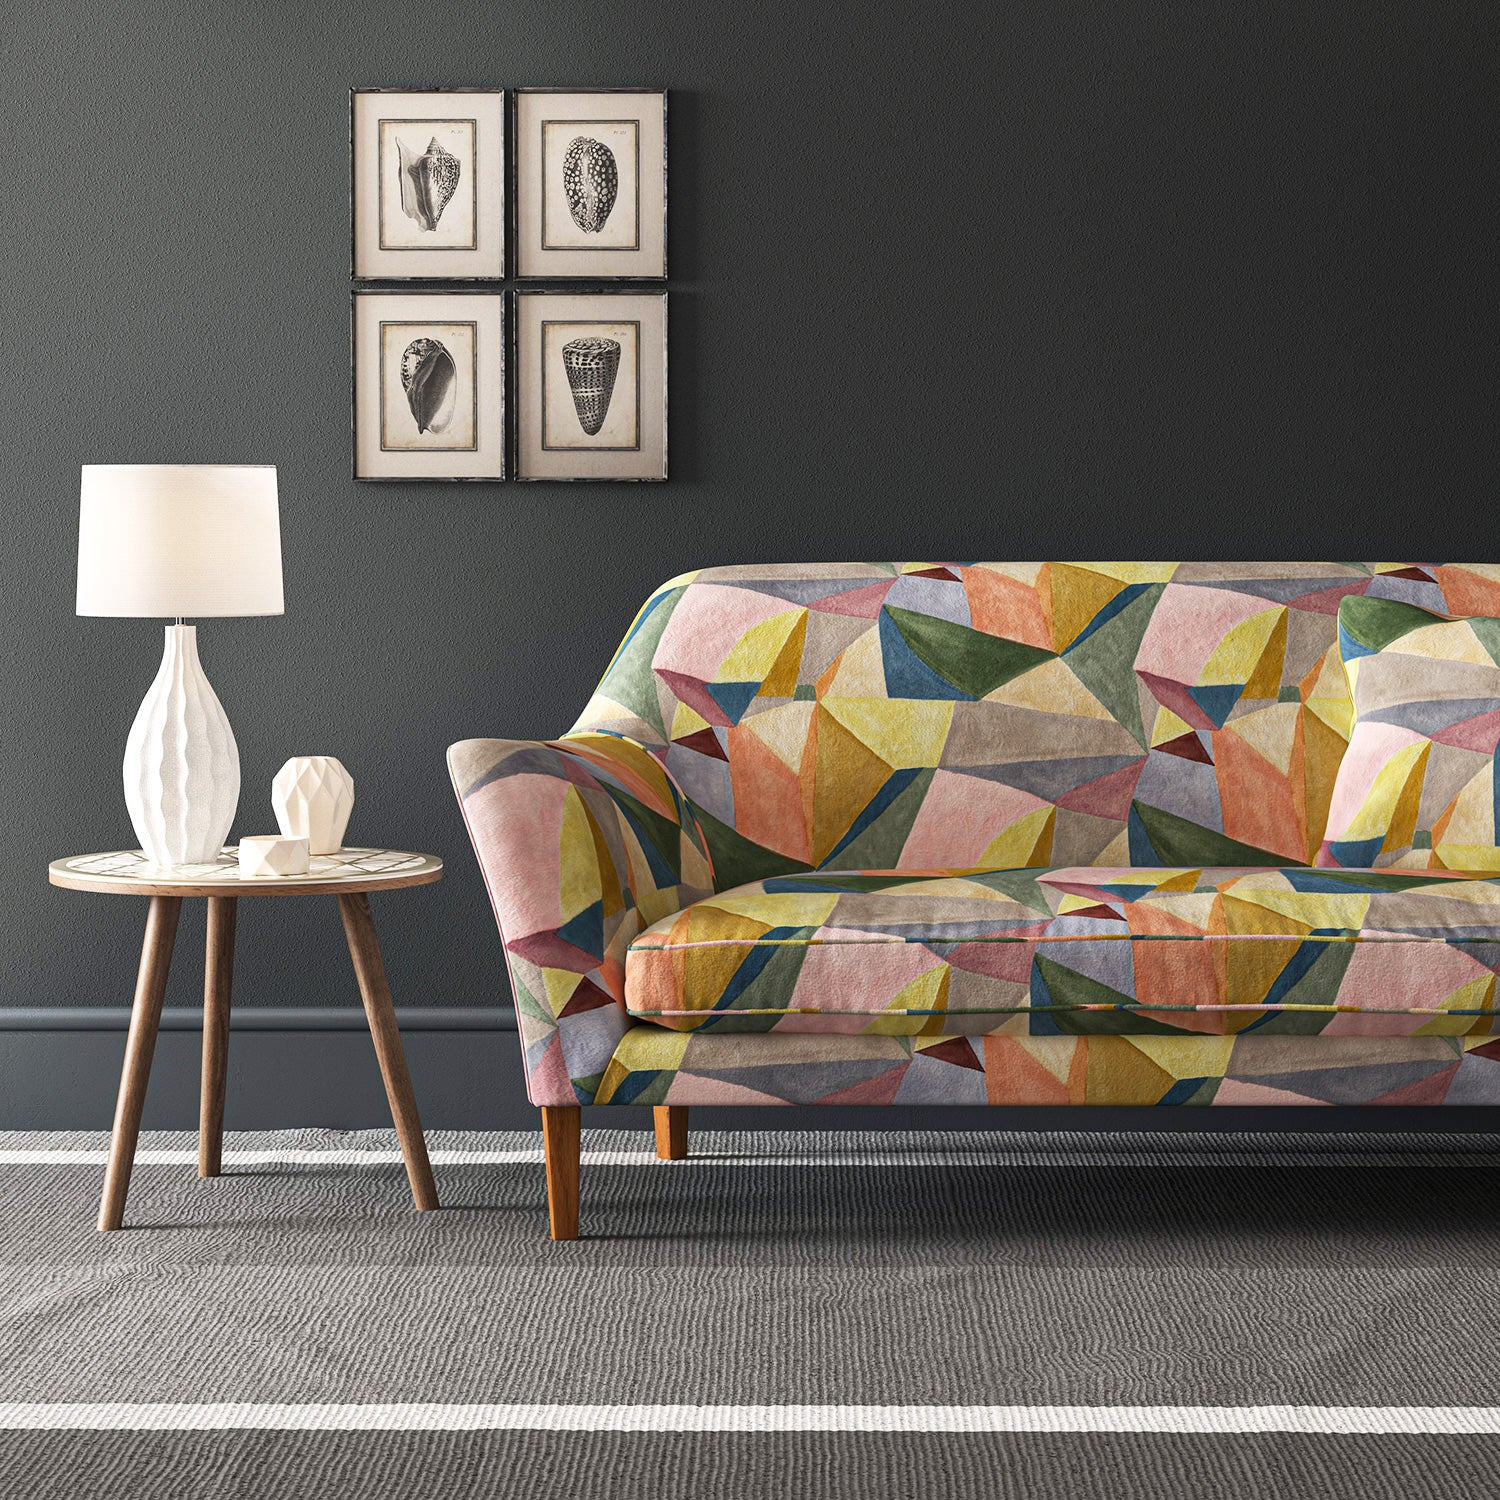 Sofa upholstered in a velvet stain resistant fabric with a multicoloured geometric design